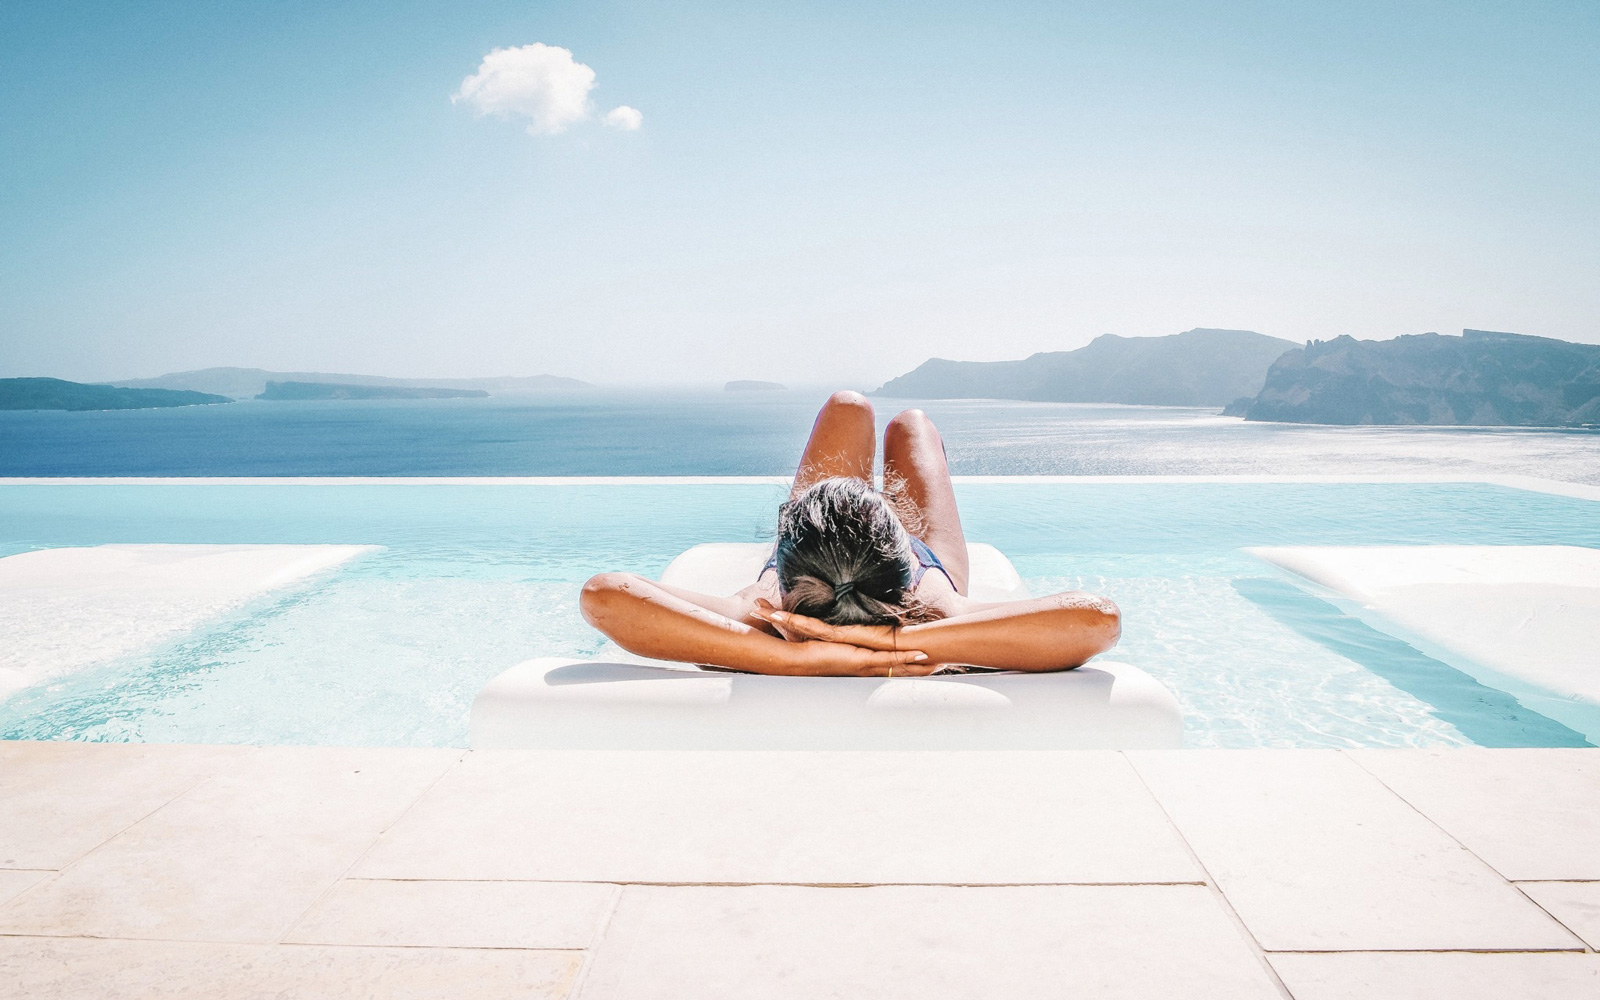 Person relaxing by water on vacation